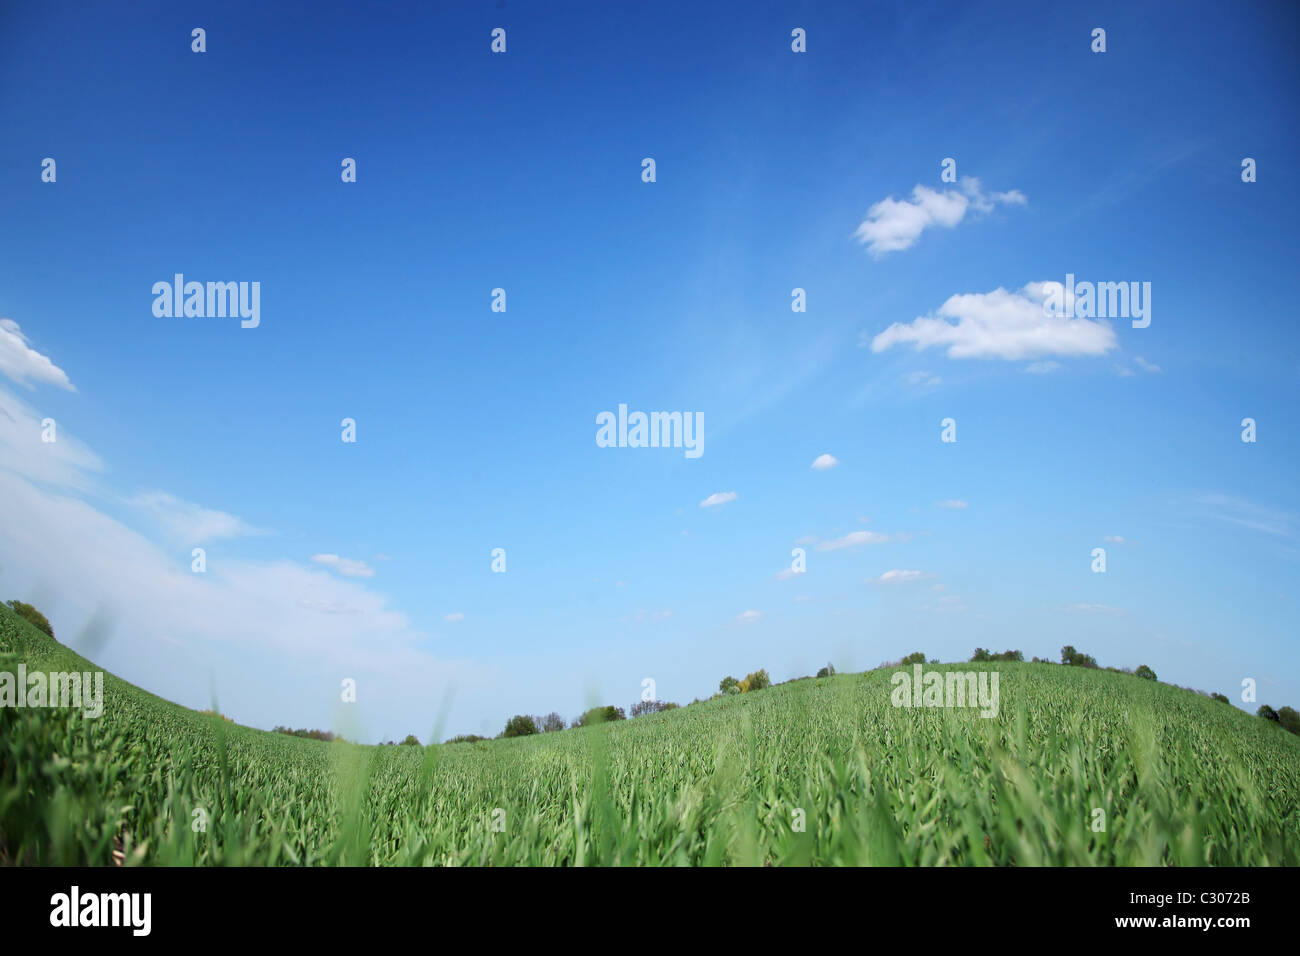 Green field and bly cloudless sky. - Stock Image